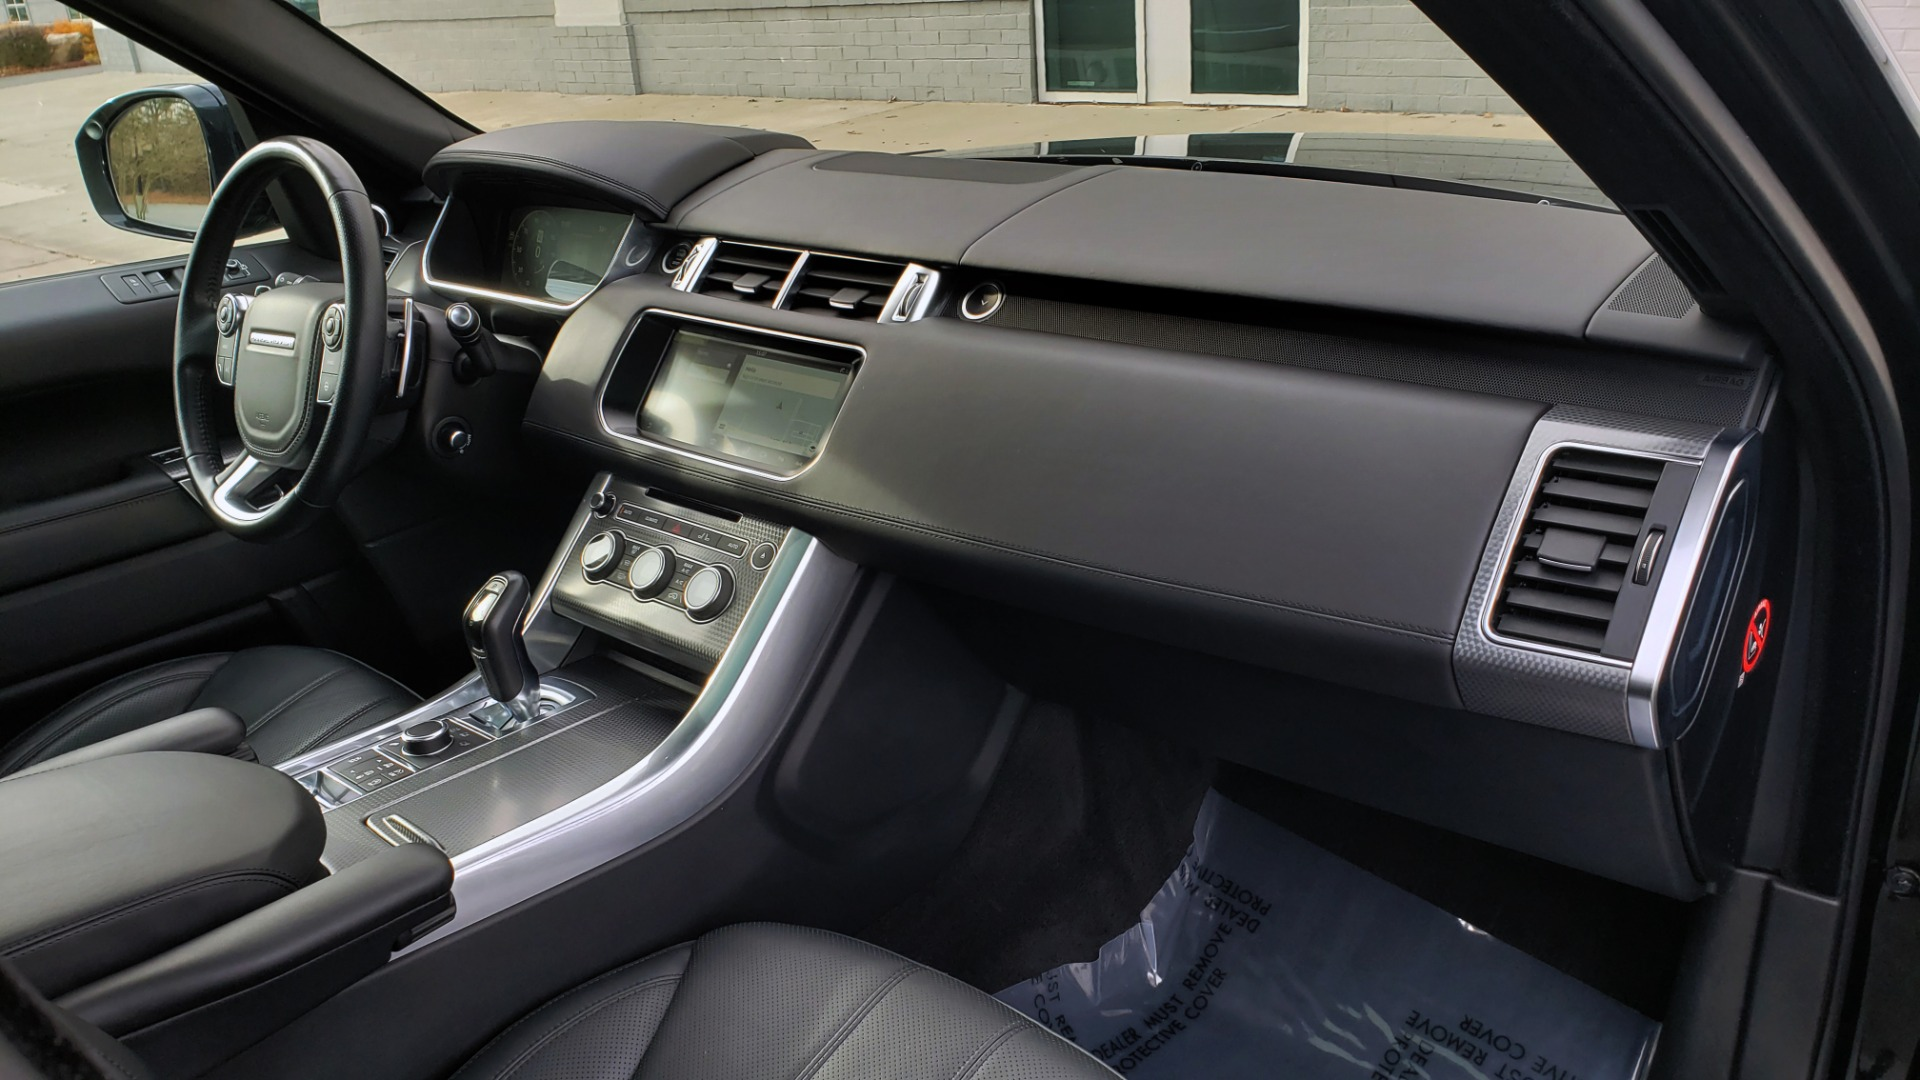 Used 2017 Land Rover RANGE ROVER SPORT HSE DYNAMIC / SC V6 / NAV / MERIDIAN / PANO-ROOF / REARVIEW for sale Sold at Formula Imports in Charlotte NC 28227 171